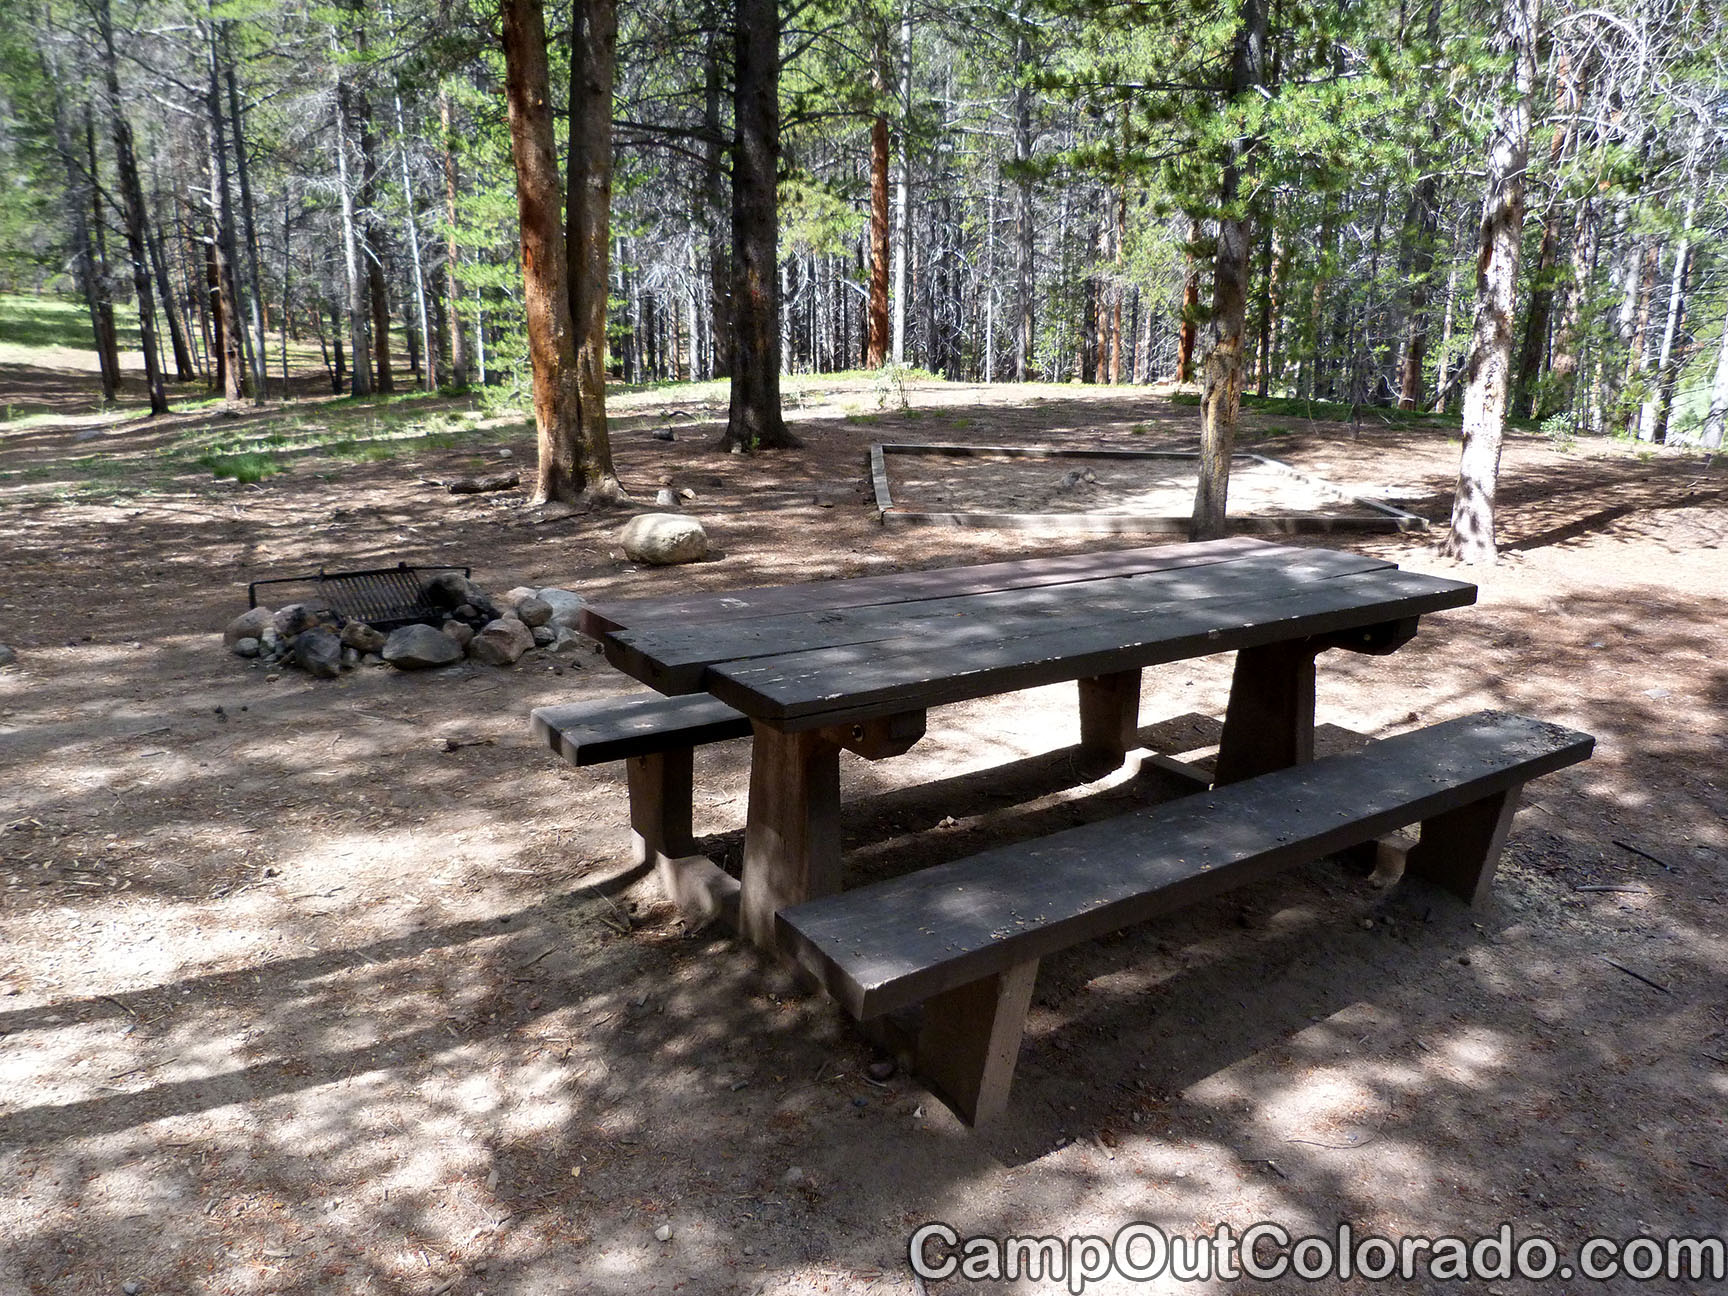 Camp-out-colorado-silver-dollar-turquoise-layout